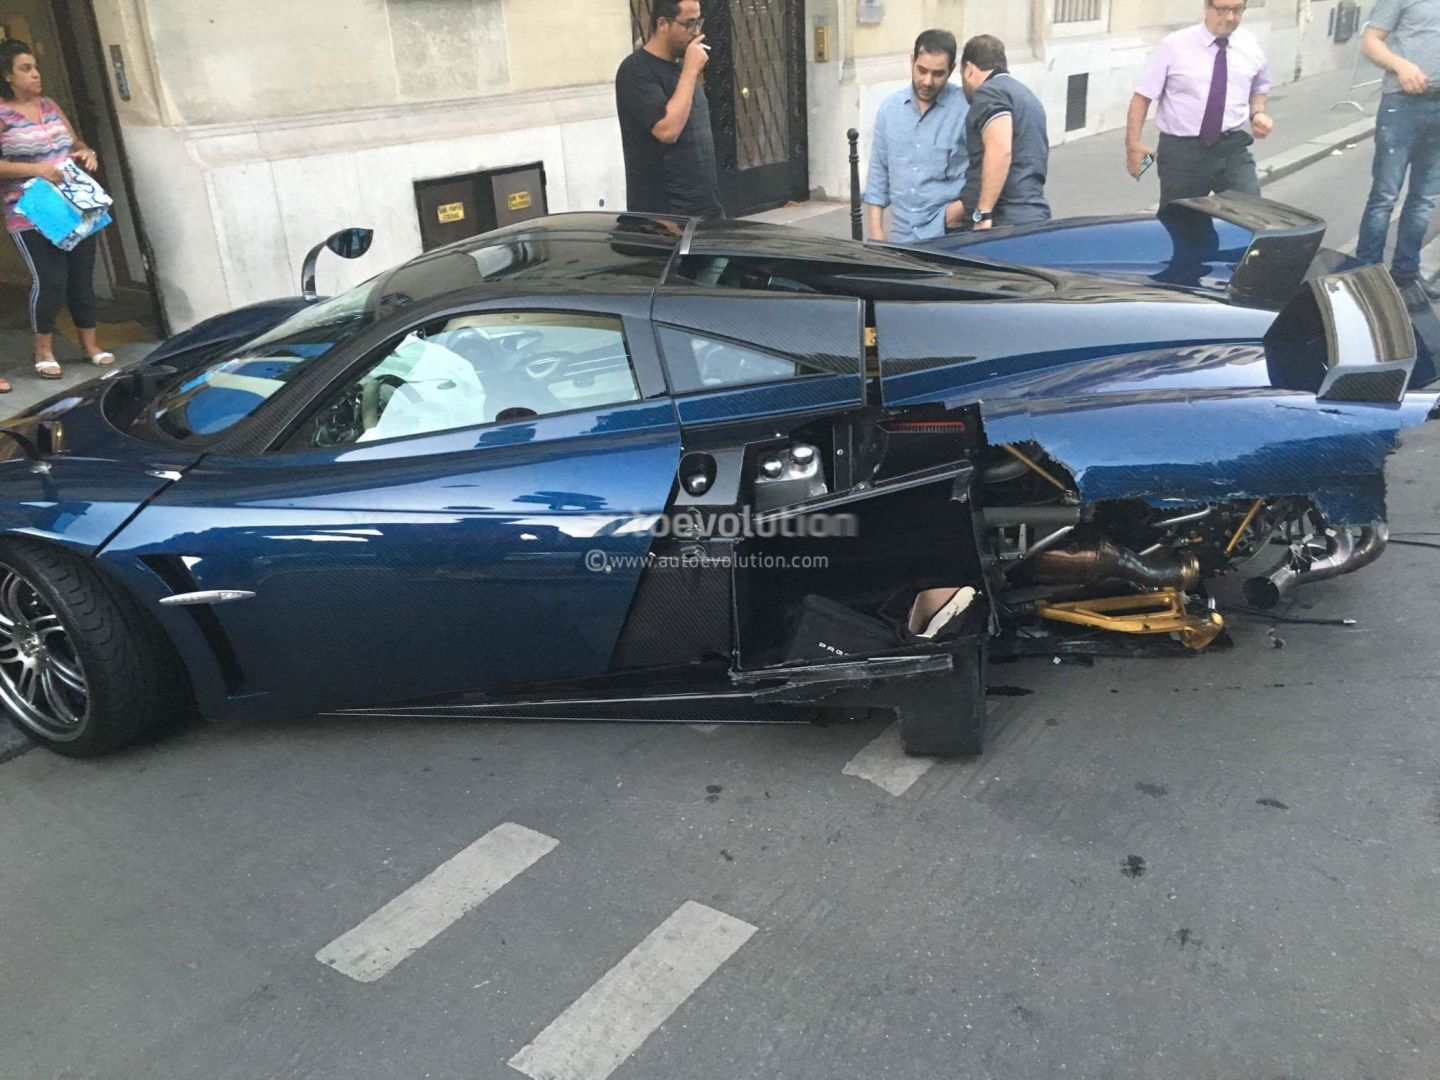 New Pagani Huayra Paris Crash Pics Show It Hit A Parked Car Cracked Windshield Autoevolution